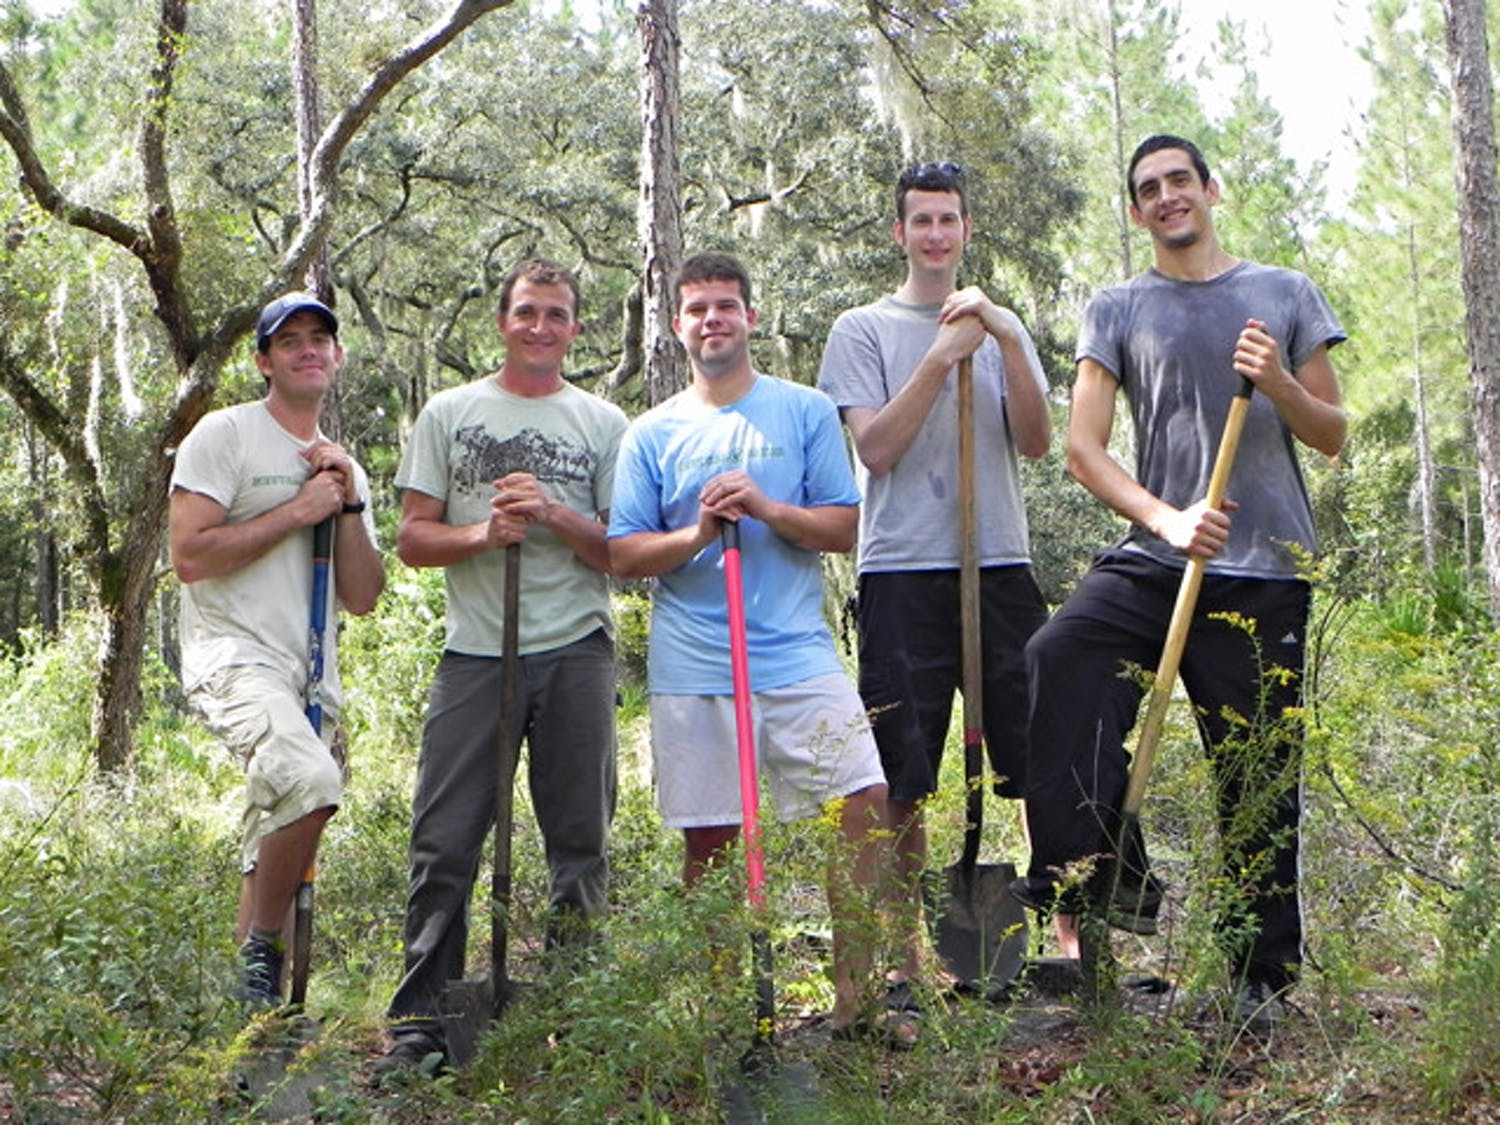 Jacob Cravey, 30; Ivor Kincaide, 38; Christopher Wolf, 25; Alex Potts, 25; and David Hanan, 24, planted aroundtrees Friday morning at Paynes Prairie as part of a project with Neutral Gator.